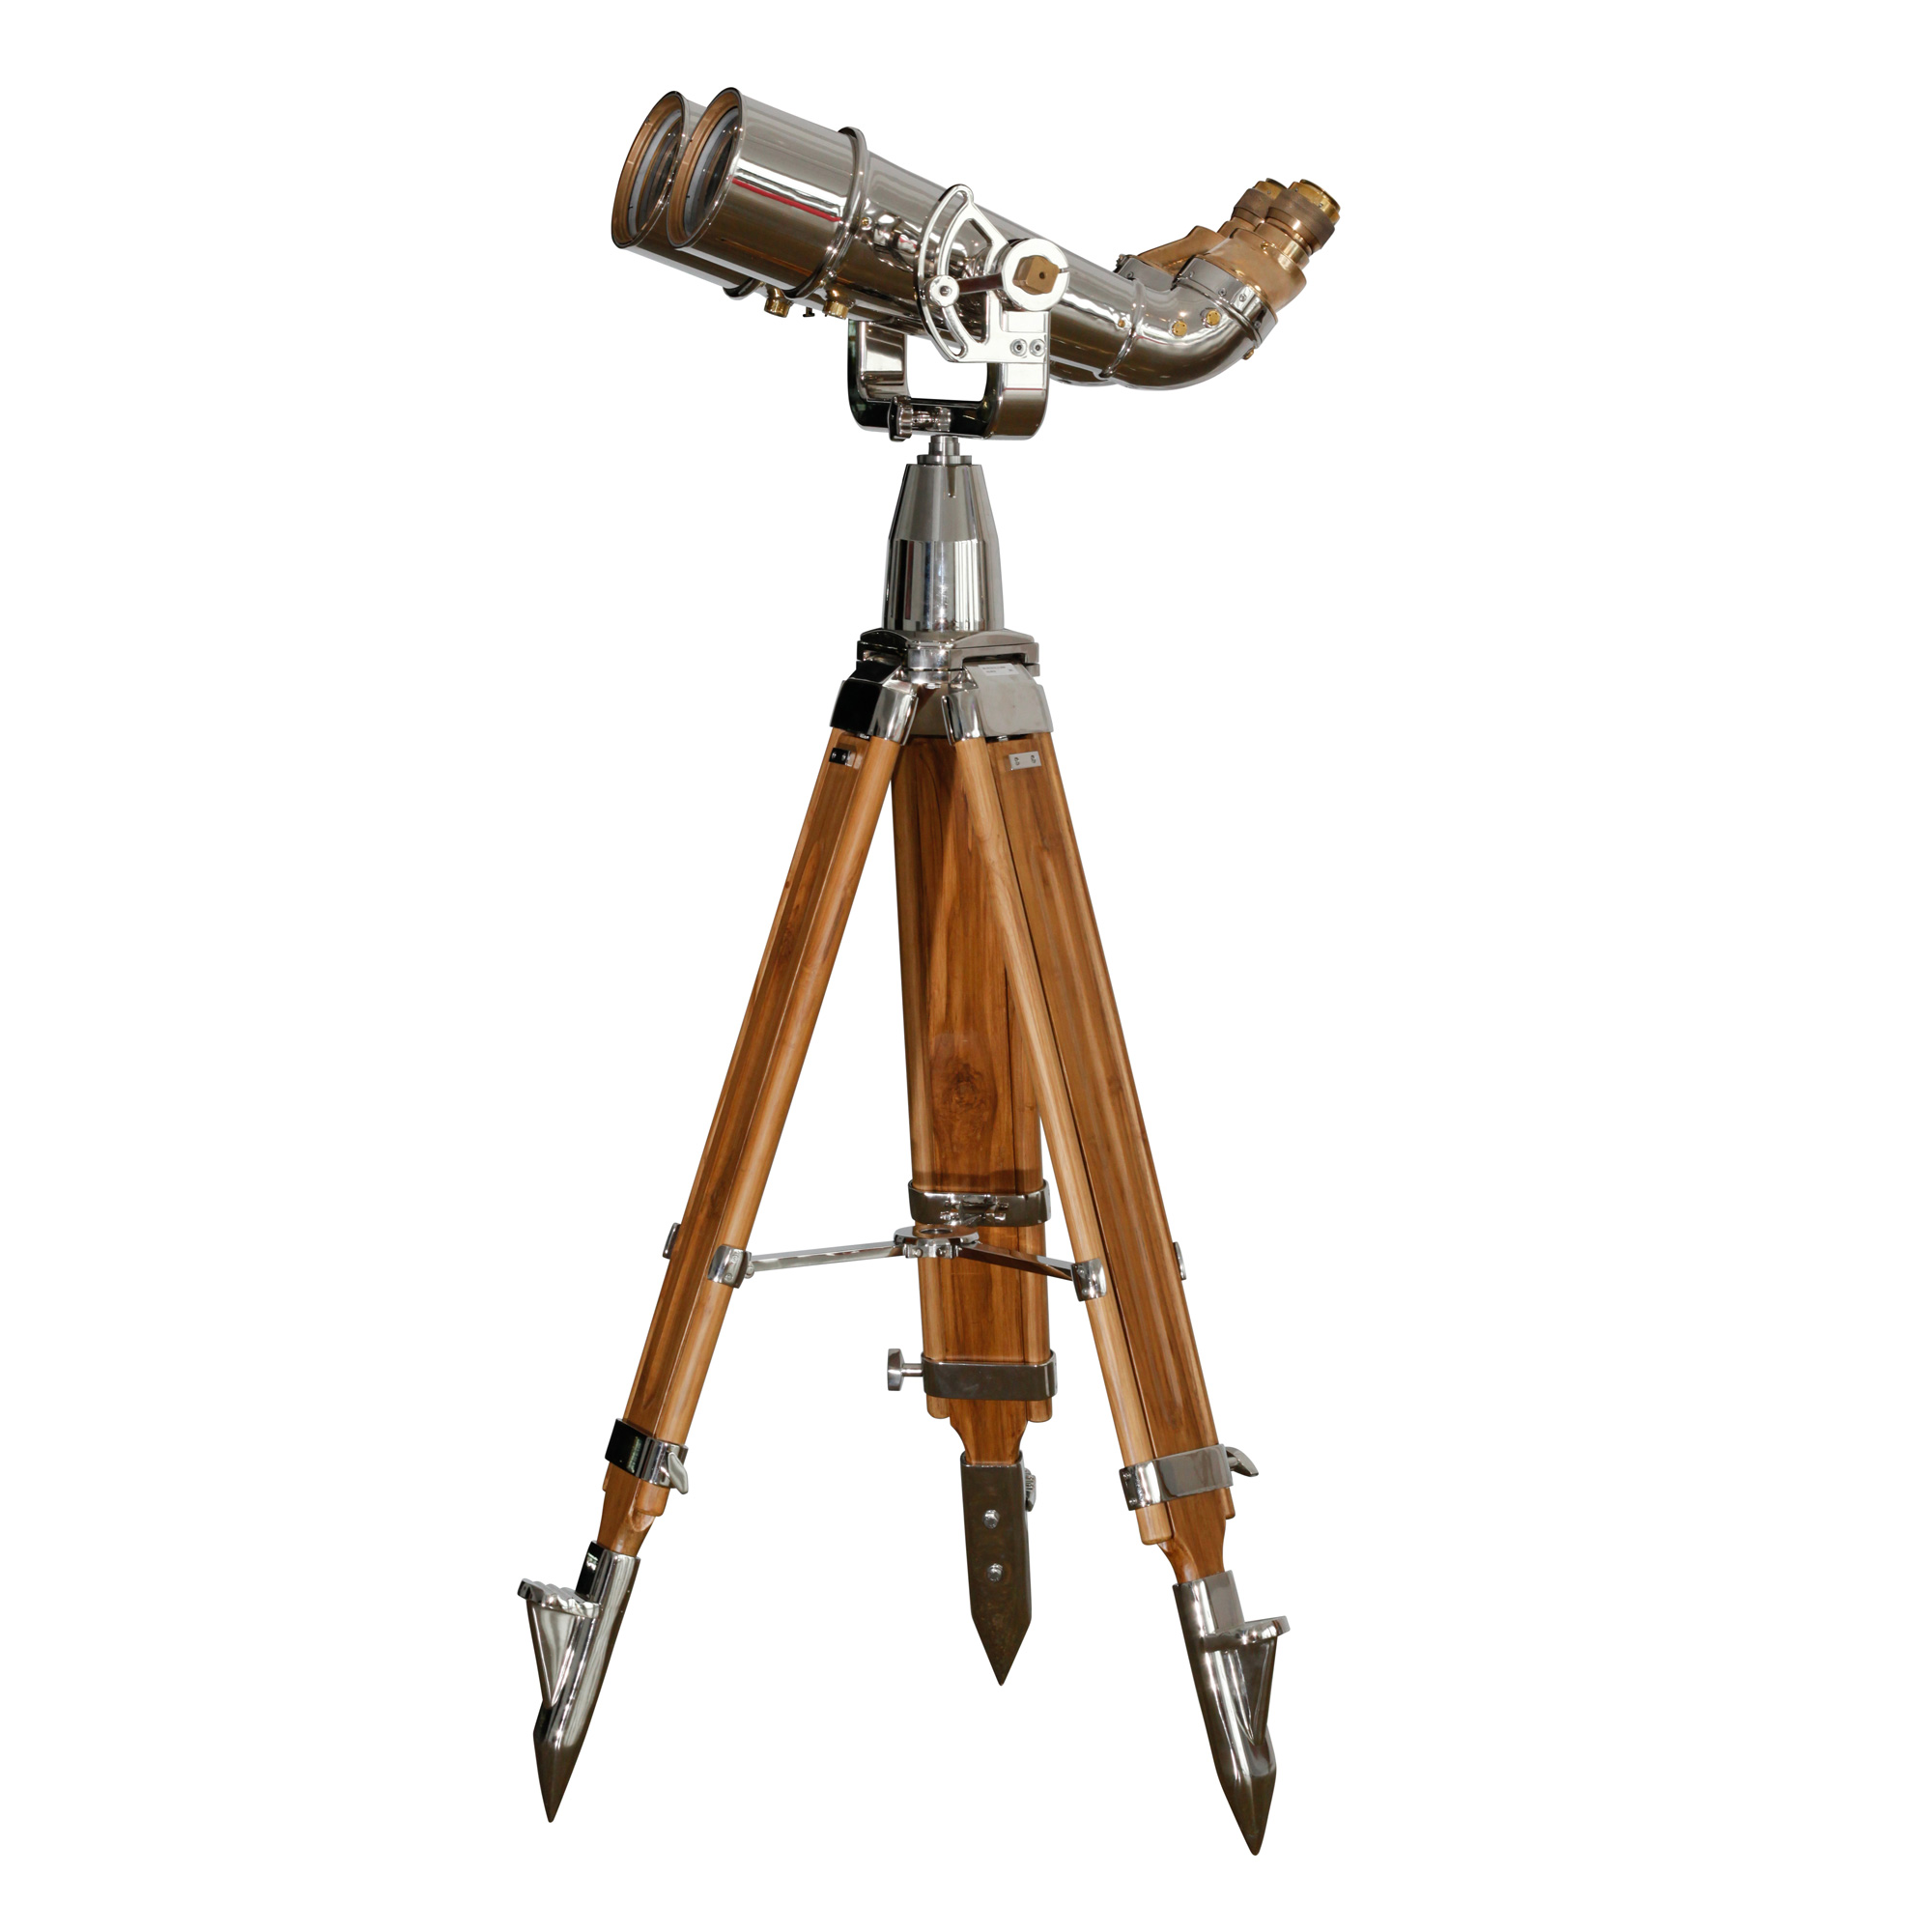 20x120 (70 Degree) Japanese Binoculars on Wood Tripod